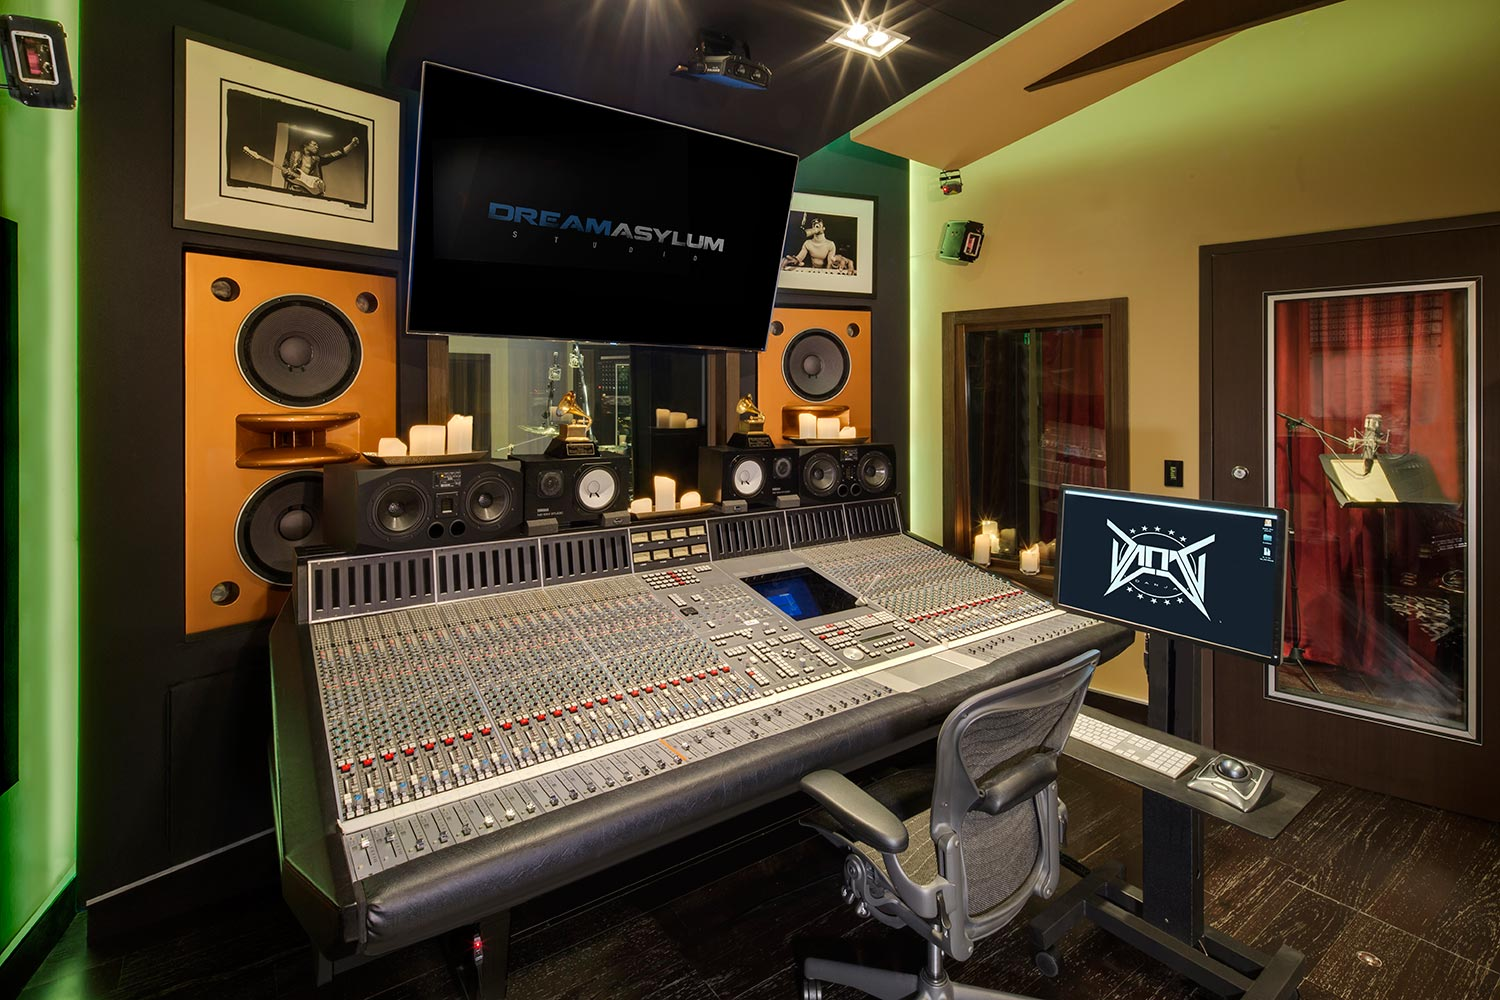 Two of the contemporary music scene's most prolific hit producers and mixing engineer, Nate 'Danja' Hills and Marcella Araica have added a cutting edge, WSDG recording studio to their N.A.R.S. (New Age Rock Stars) label. Danja Studio, Studio X.